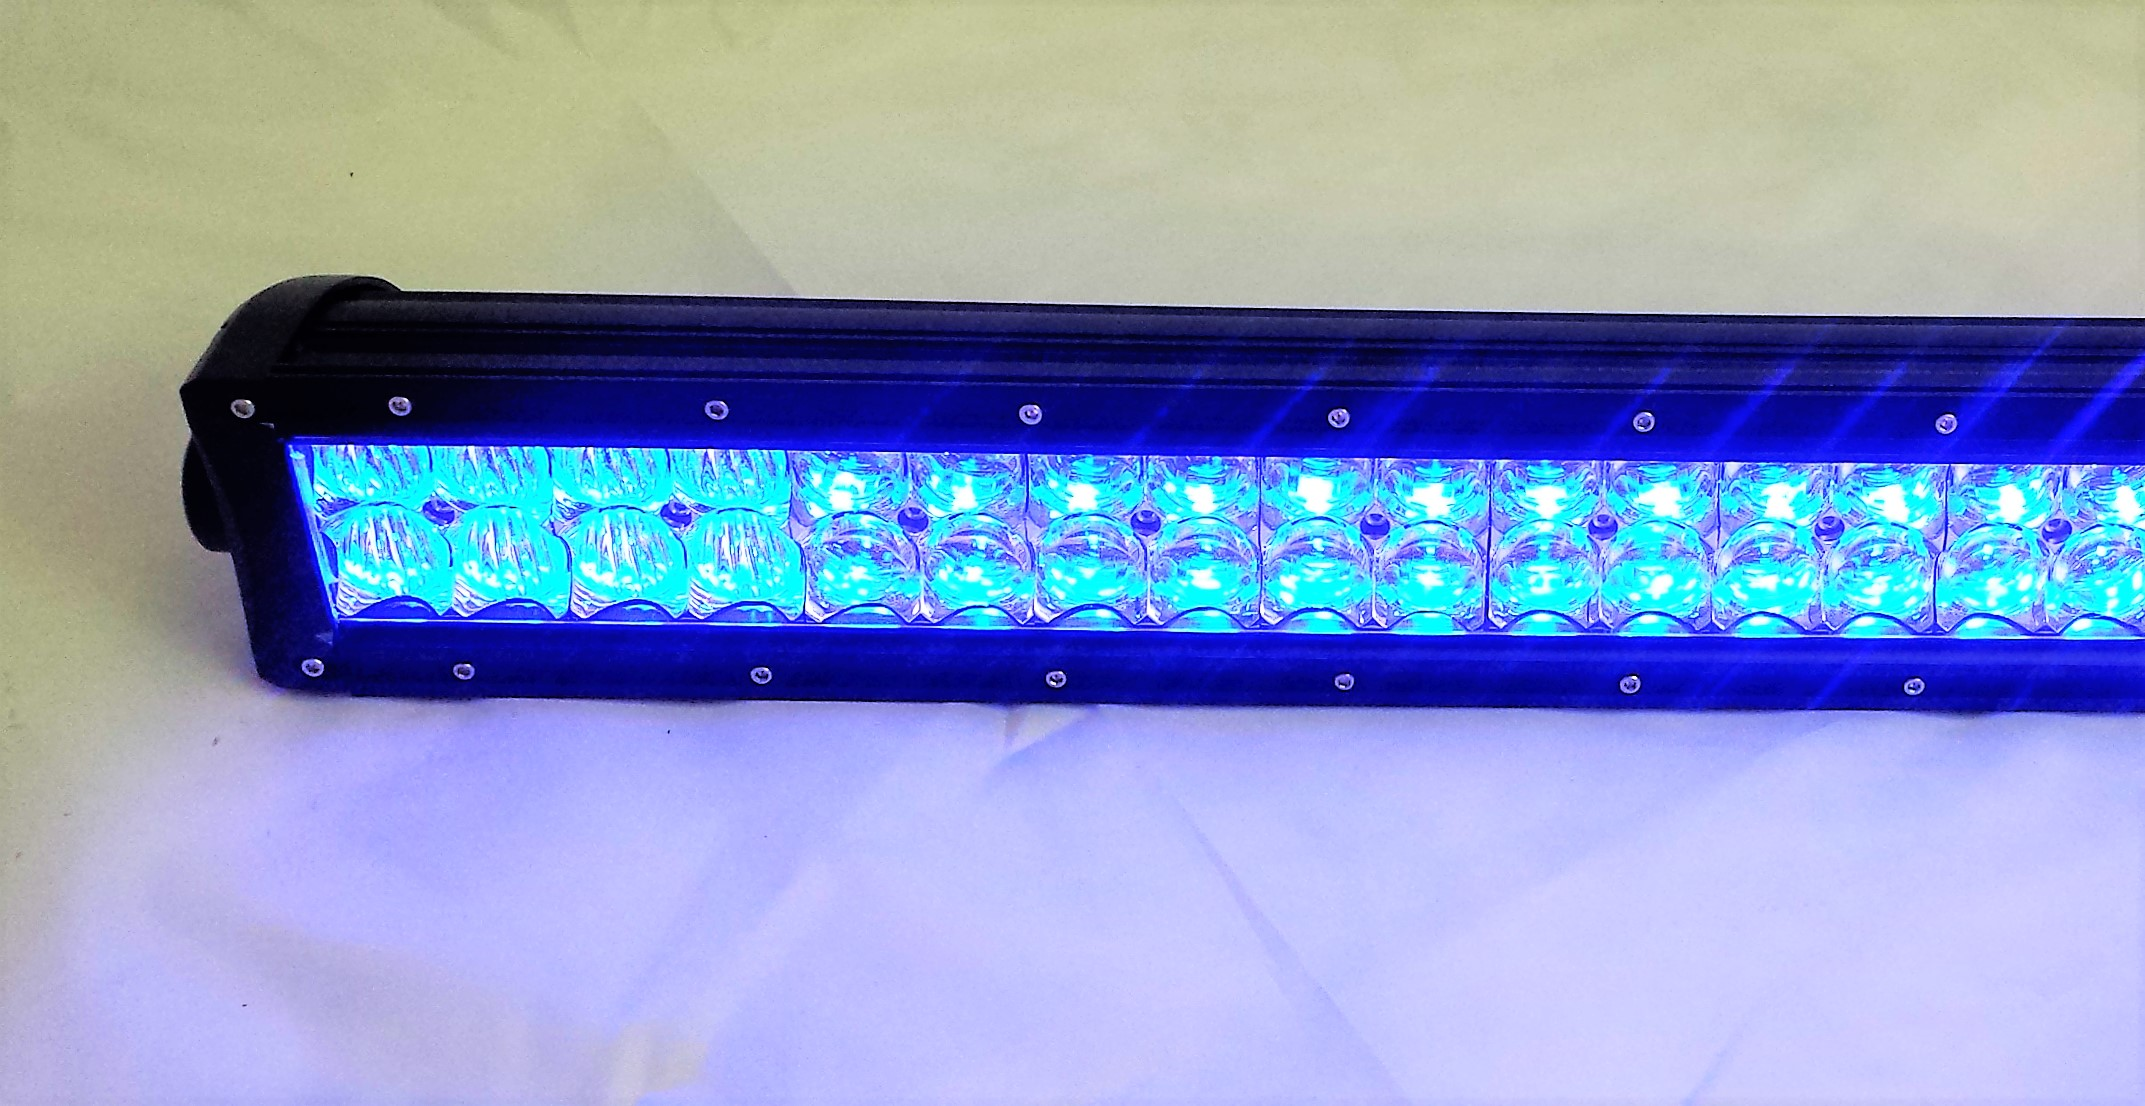 Lll 5d 300 rgb led light bar 50 inch 300w color changing lifetime rgb led light bar 50 inch 300w color changing lifetime led lights lifetime led lights aloadofball Image collections